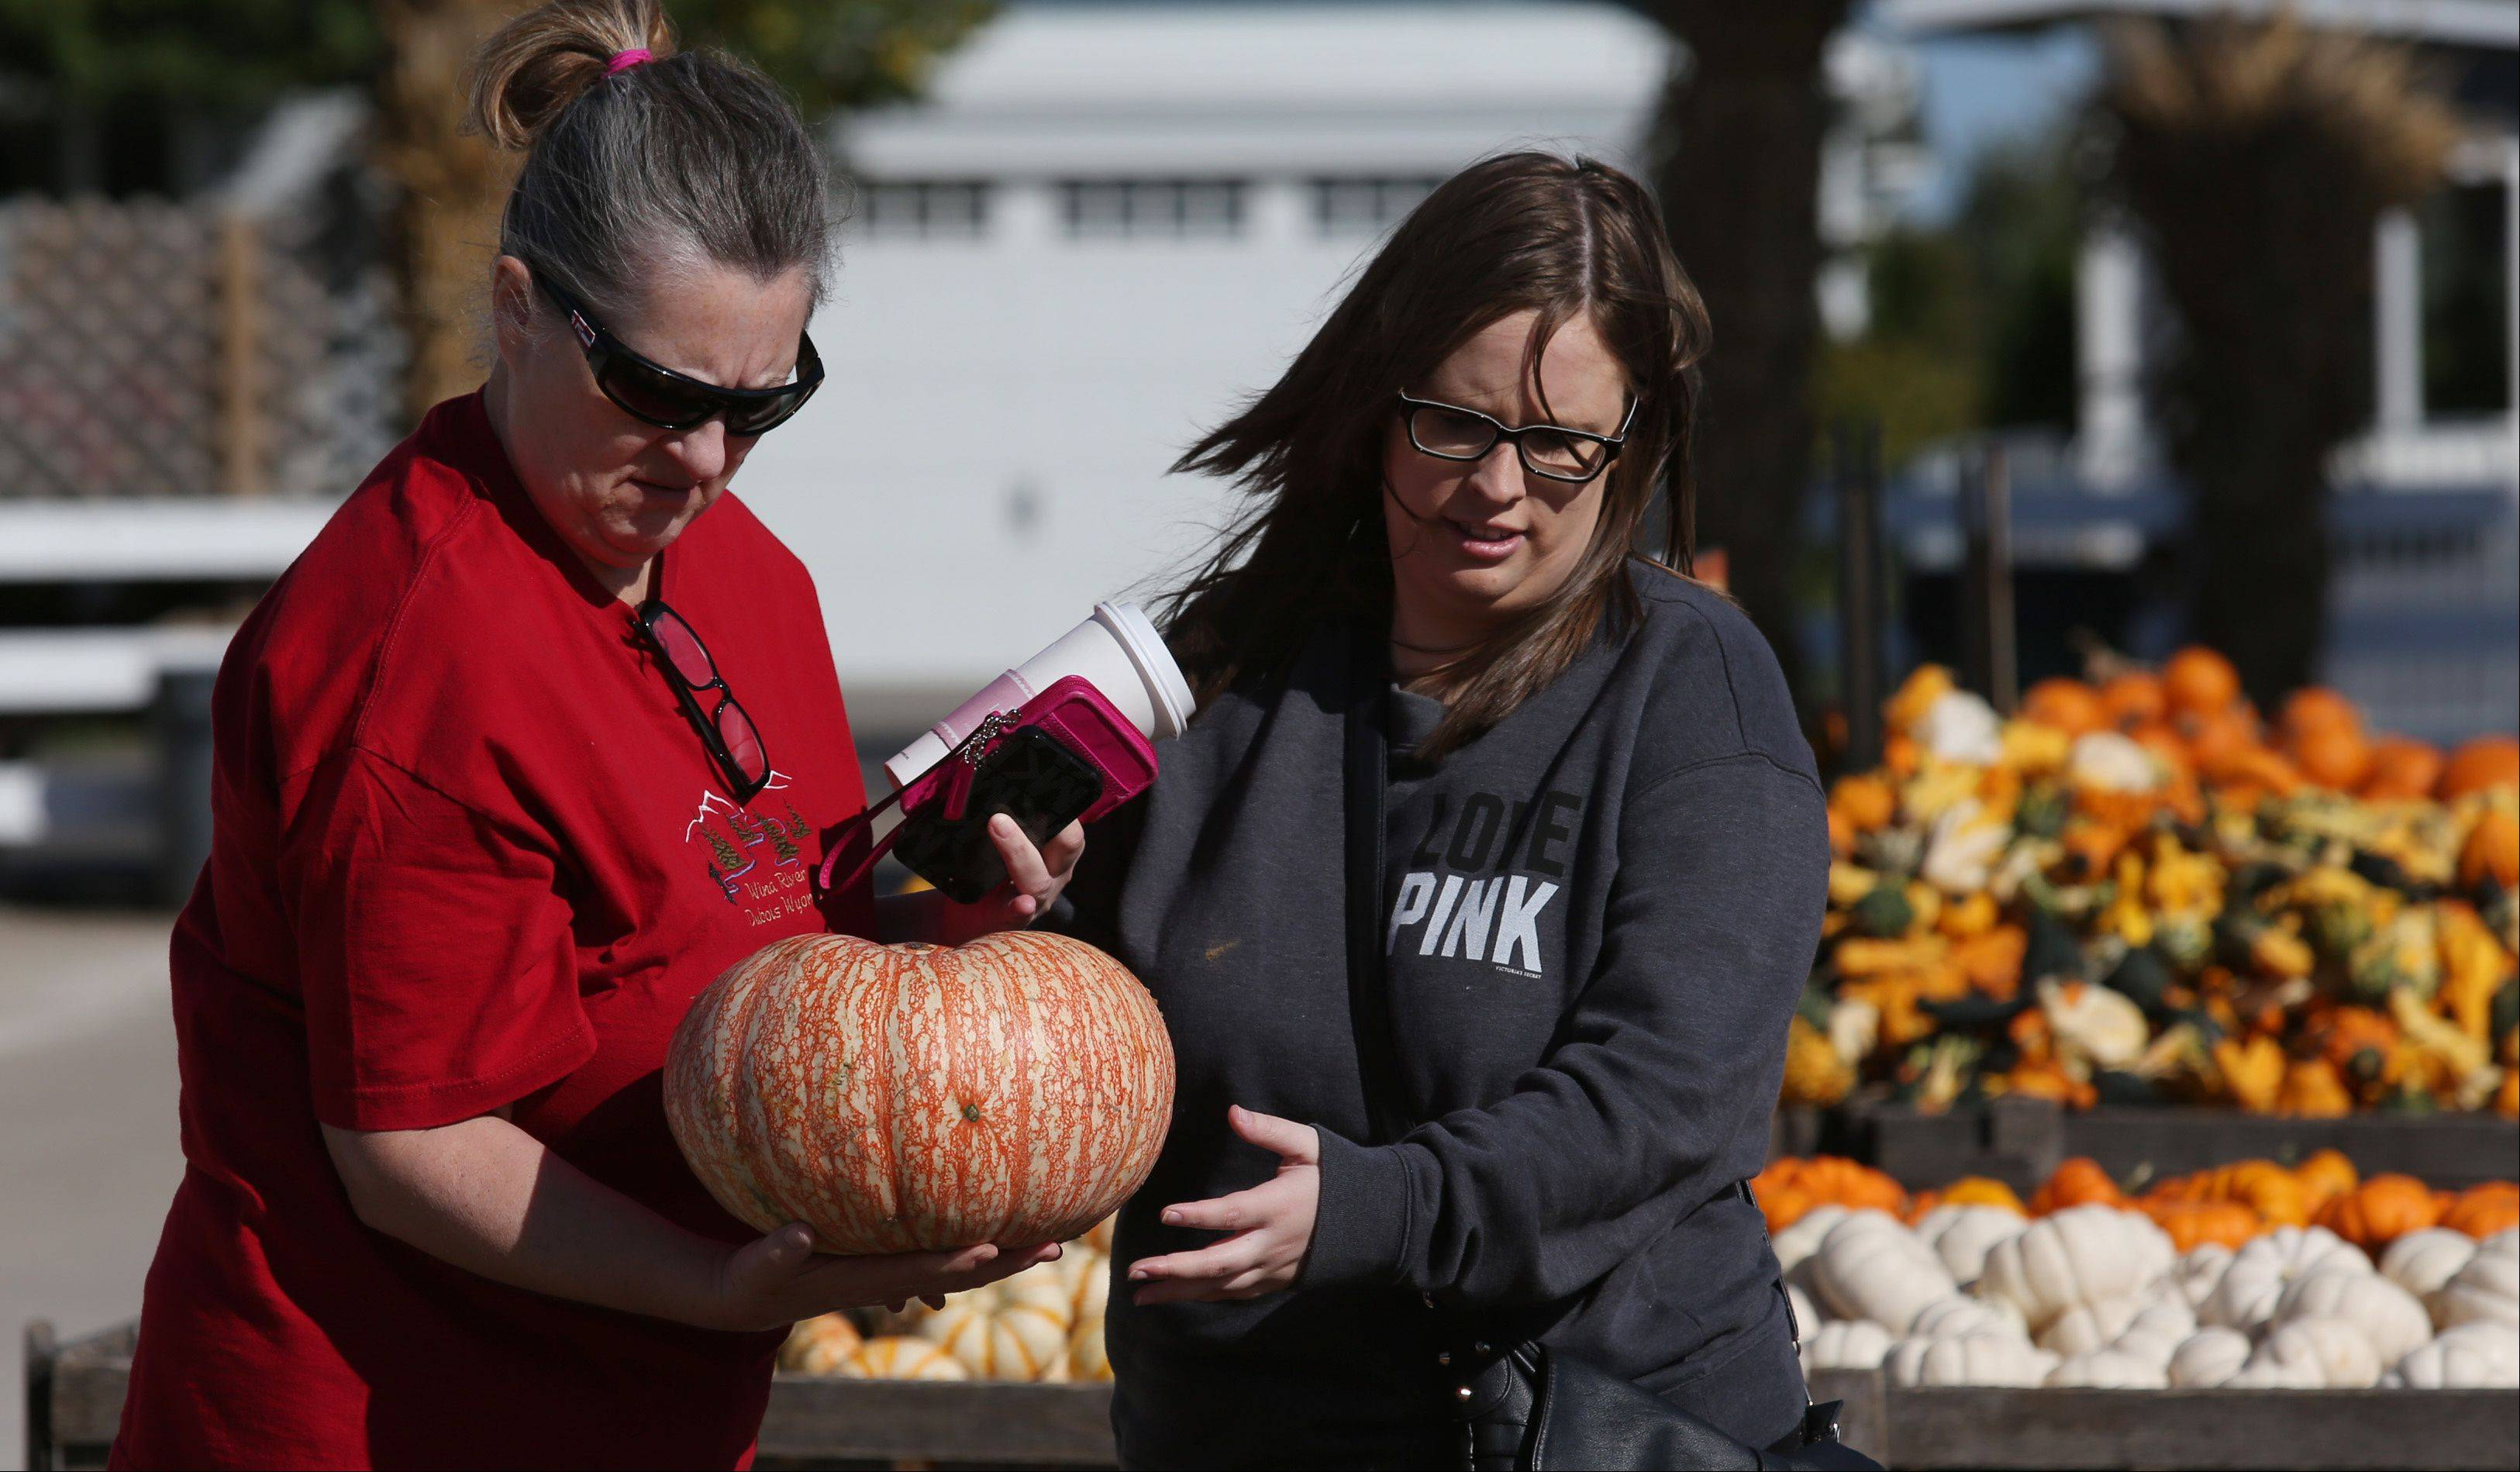 Vicki Hynes of Roselle, left, and her daughter Jessica pick out just the right pumpkins Monday afternoon at Goebbert's Pumpkin Patch in Hampshire.